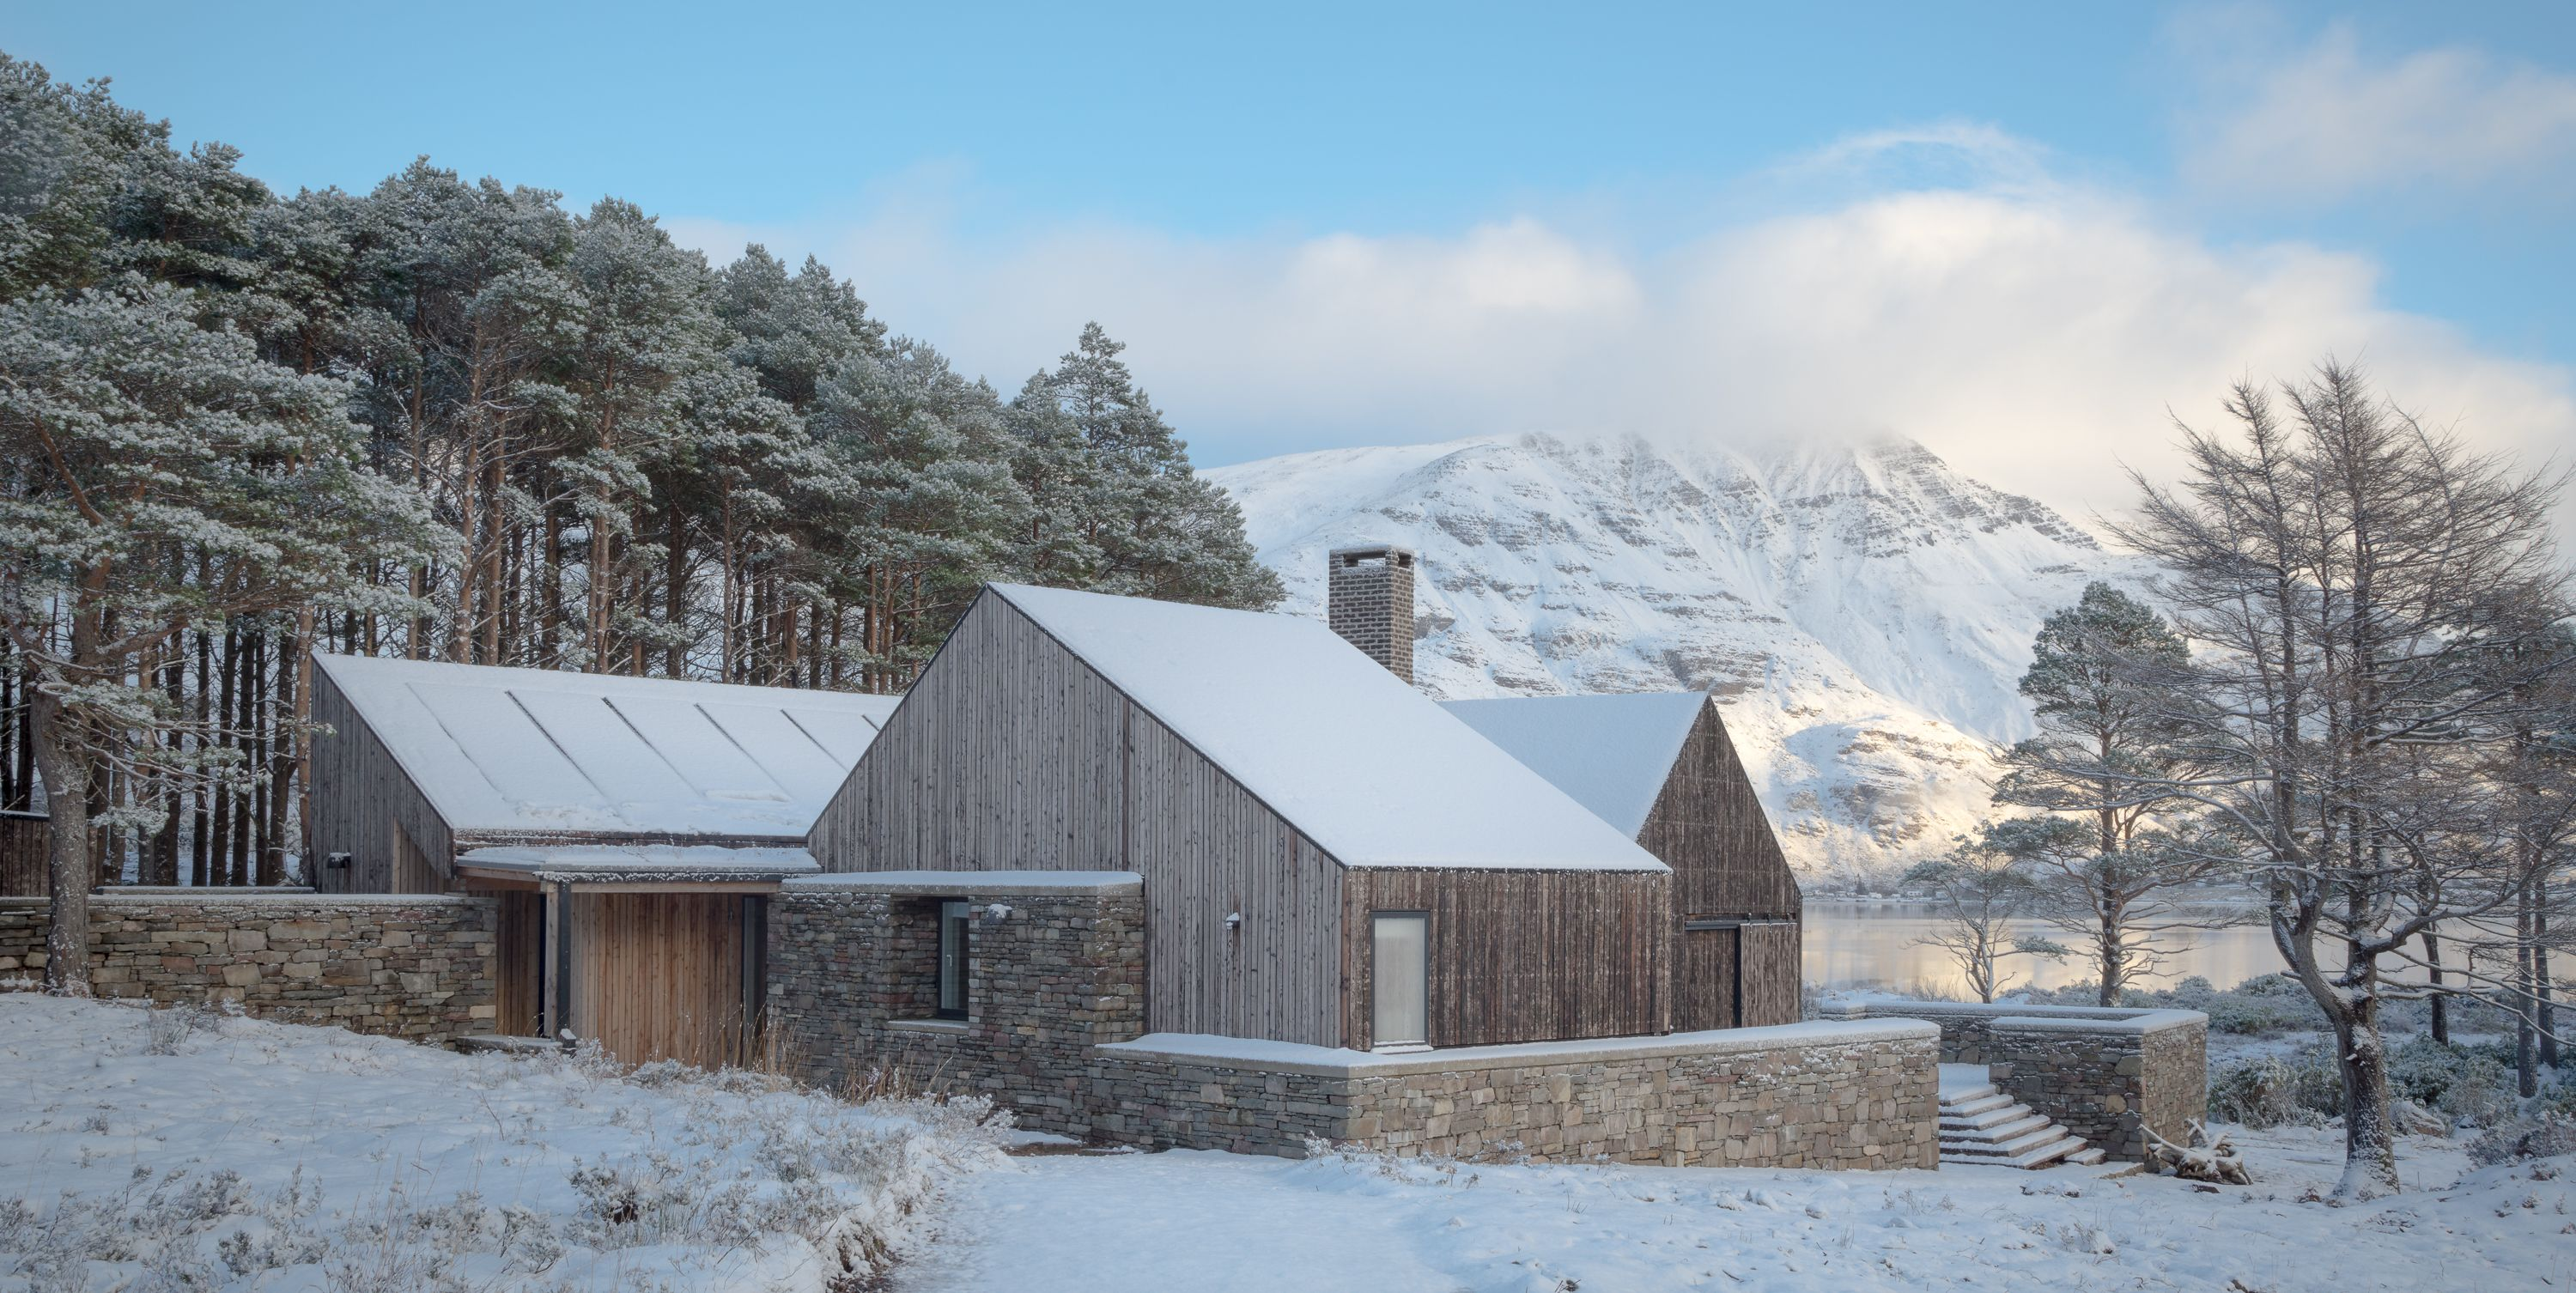 Lochside House by HaysomWardMiller Architects  - RIBA House of the Year 2018 longlist